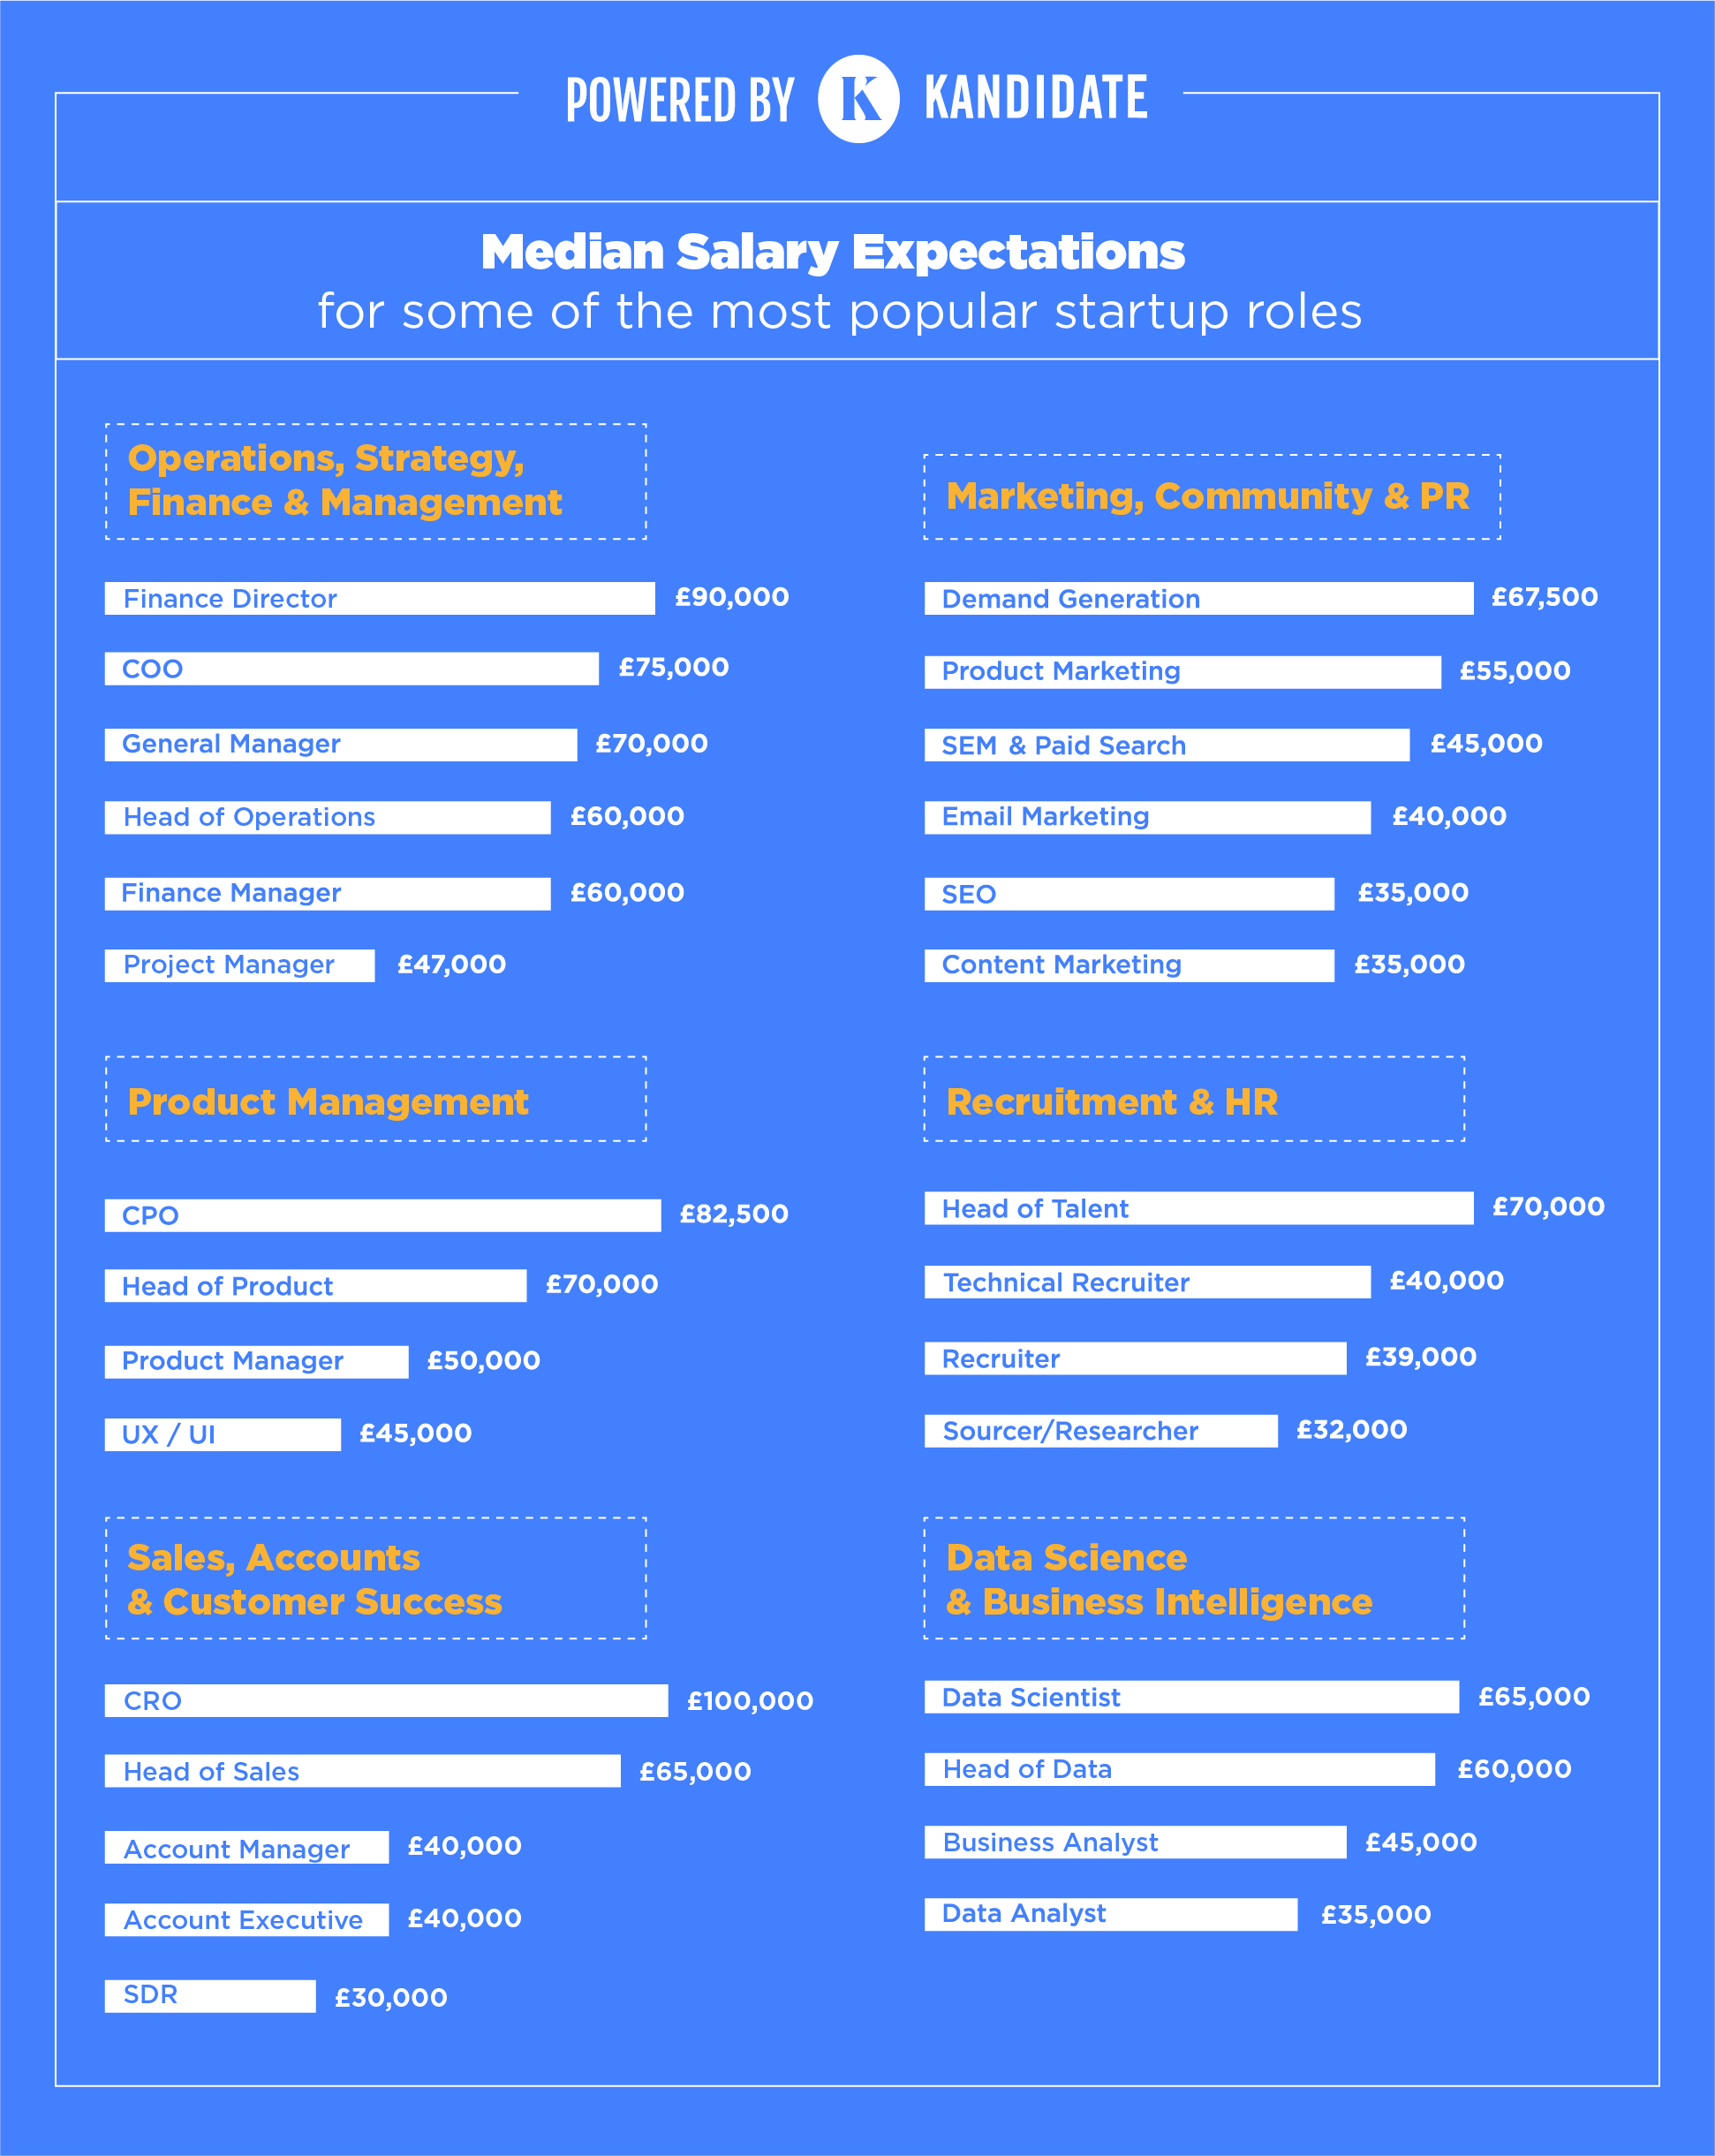 salary-expectations-by-role-startup-professionals-london